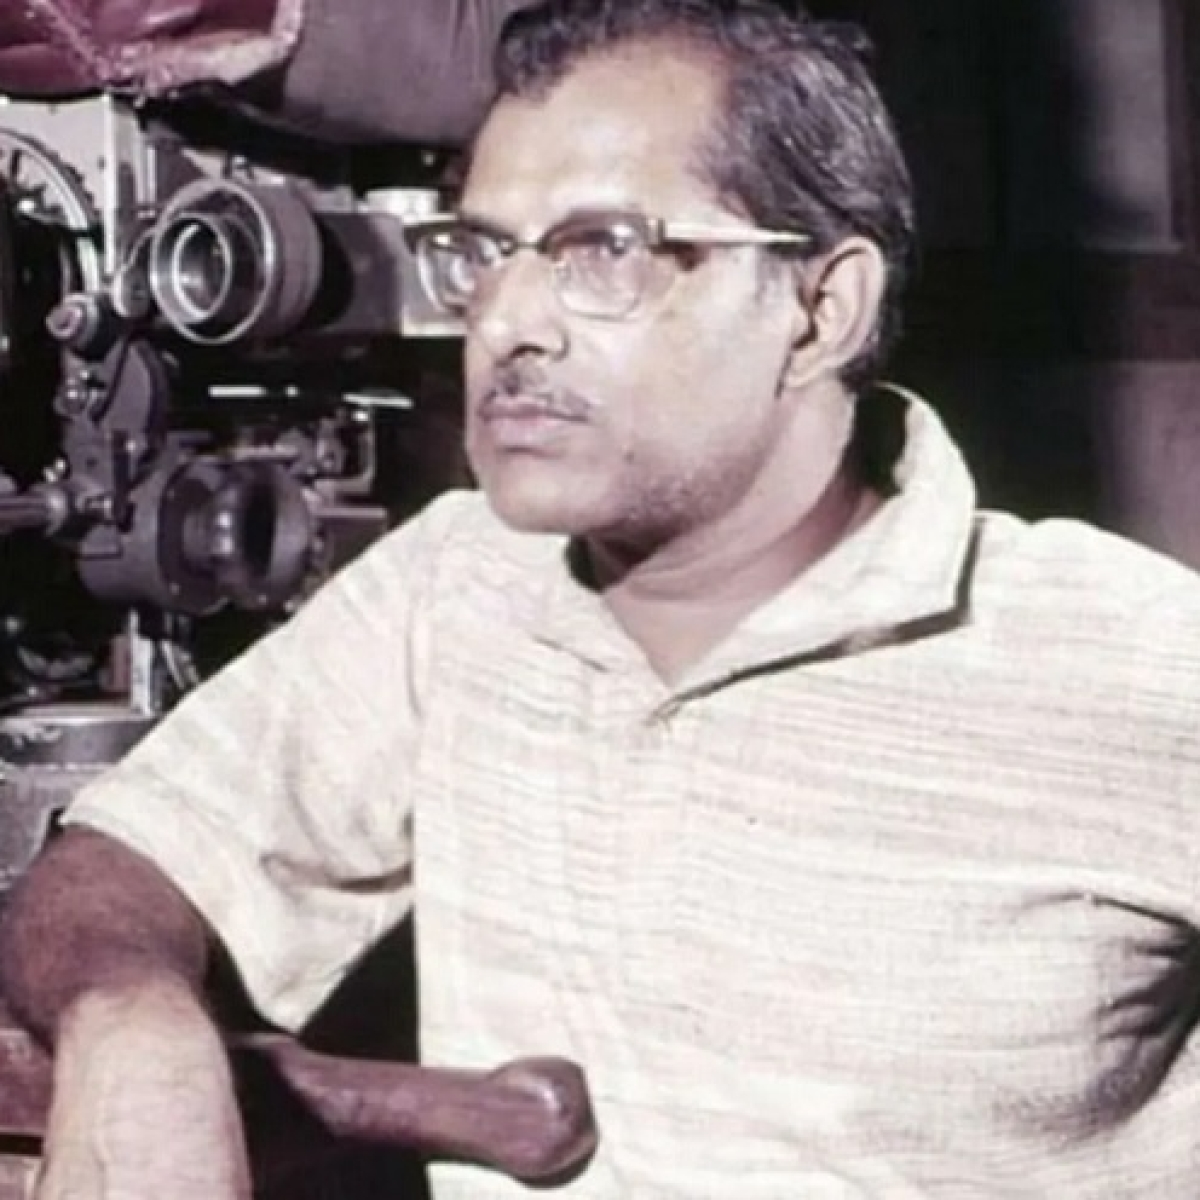 CinemaScope: Find out what's the connection between directors Frank Capra, Hrishikesh Mukherjee, and Christmas